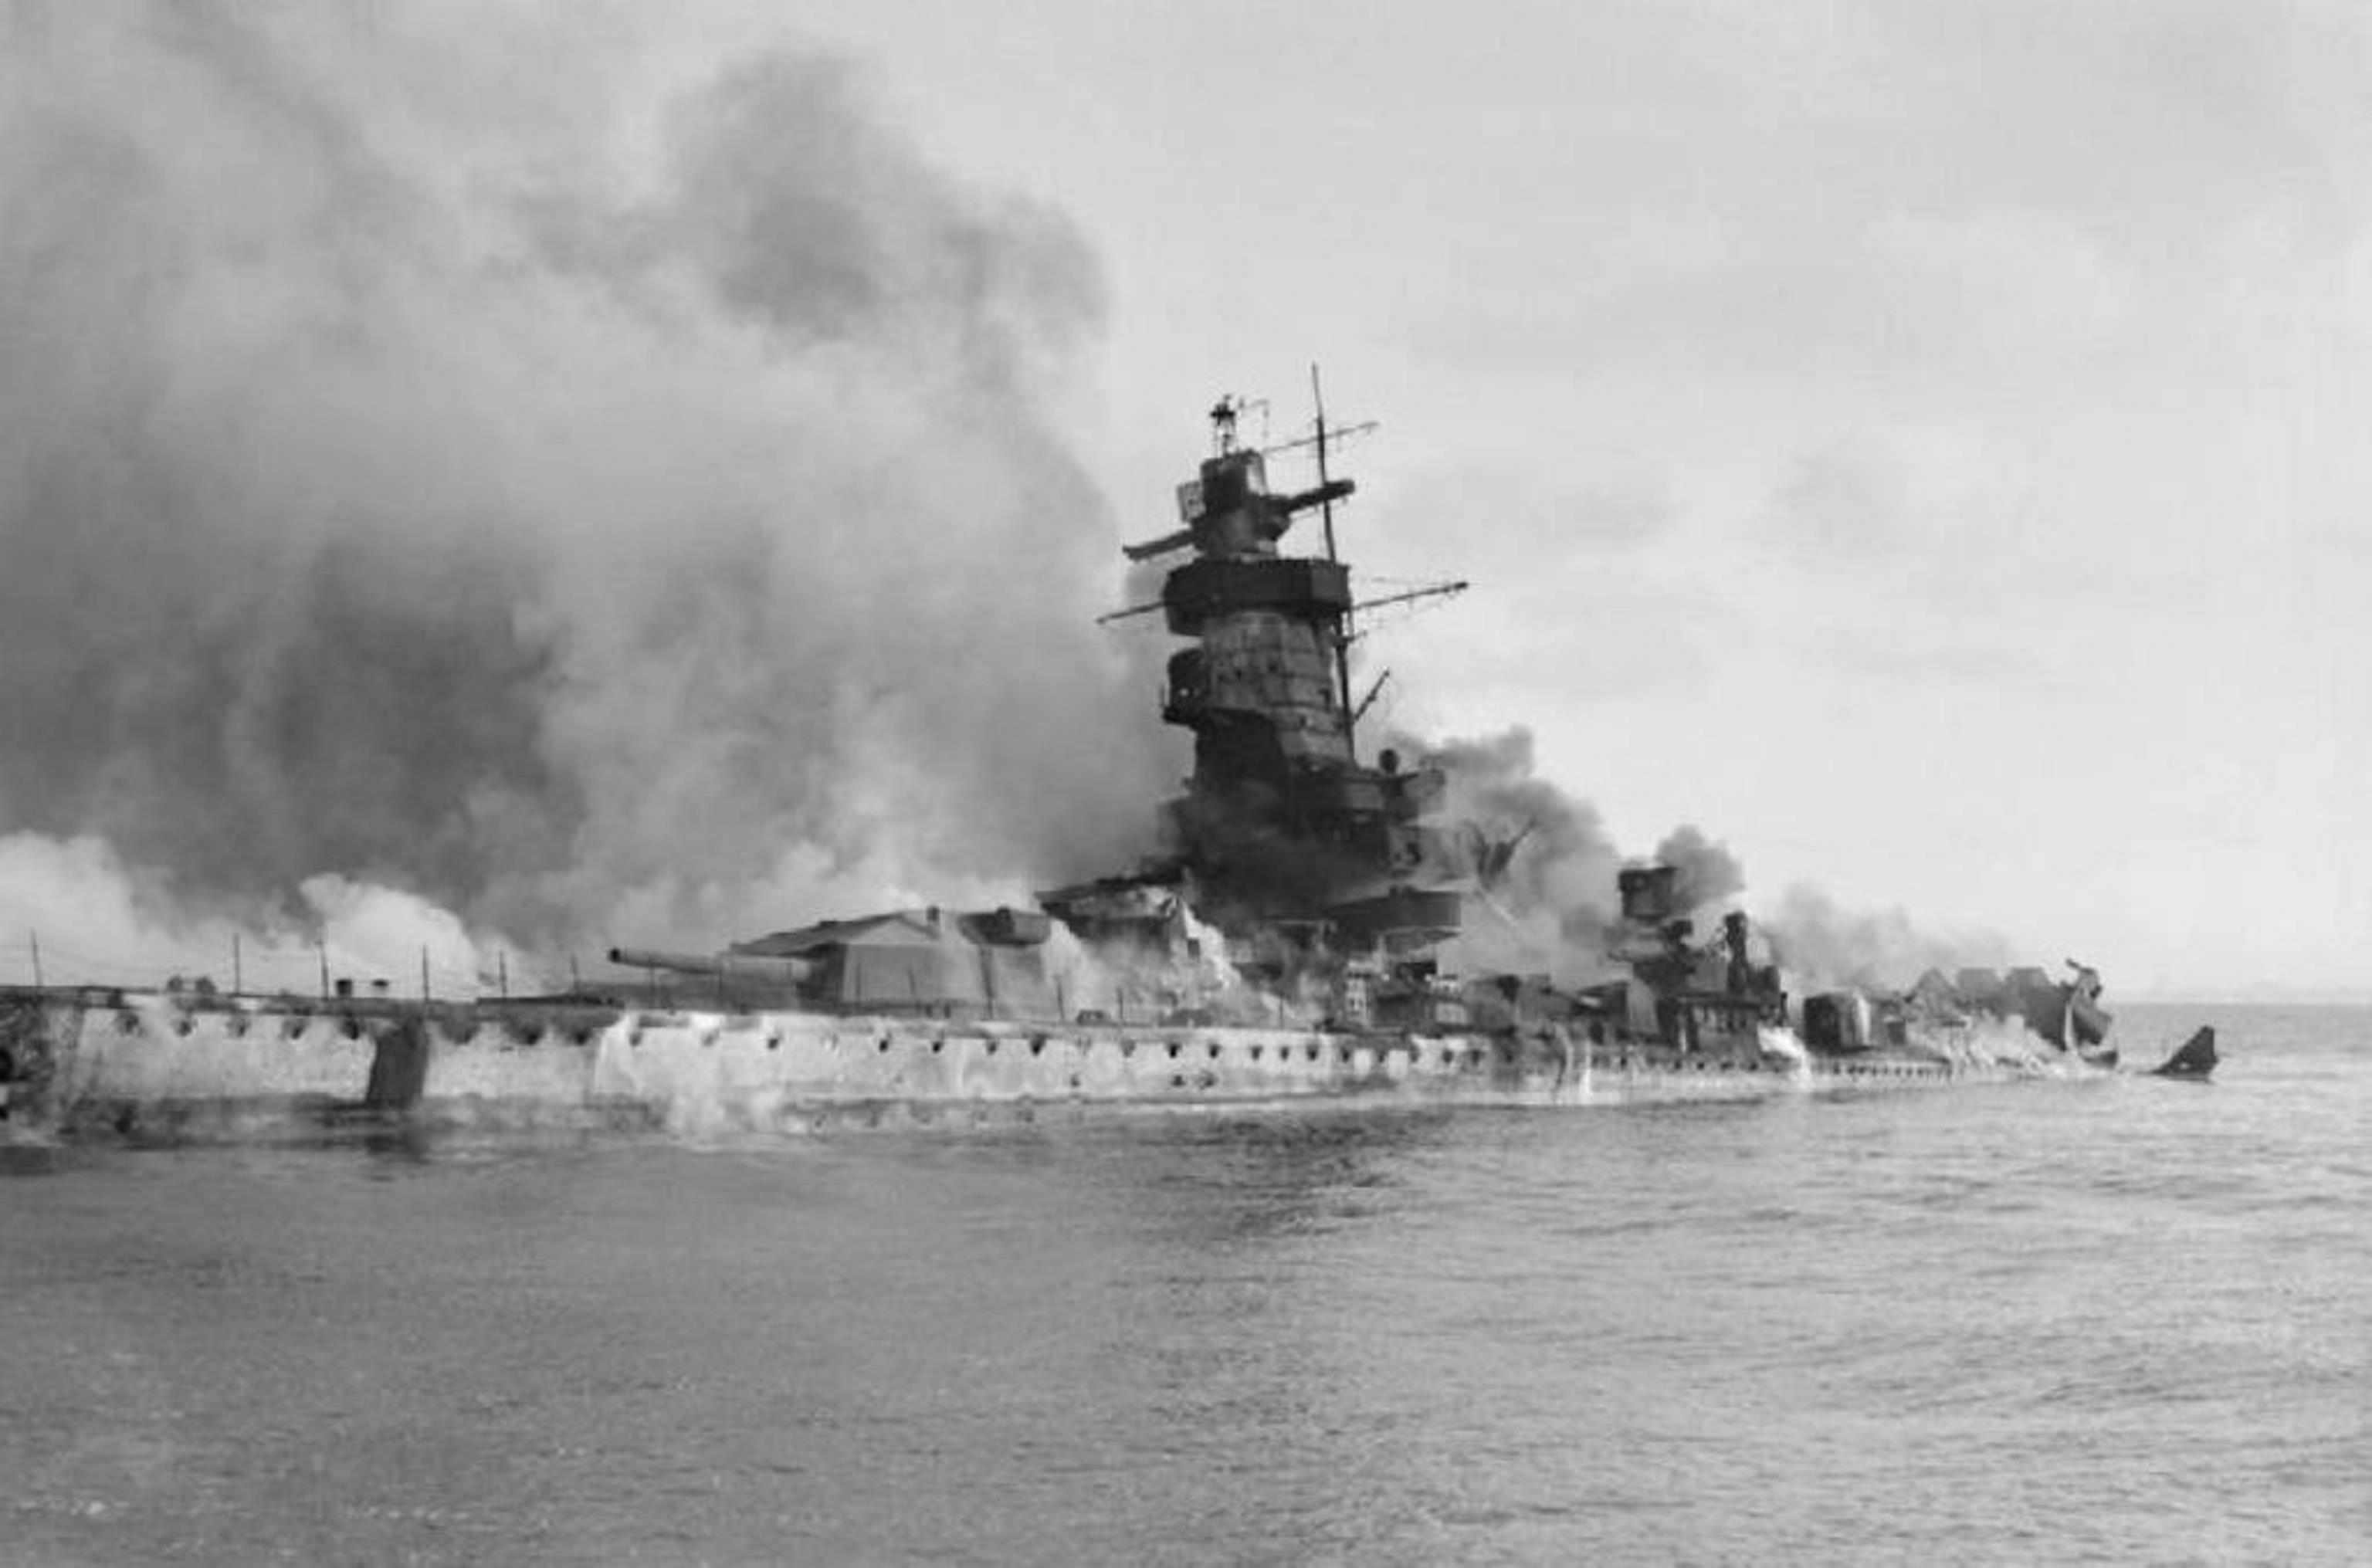 Pocket Battleship Admiral Graf Spee burning and partially submerged in the River Plate